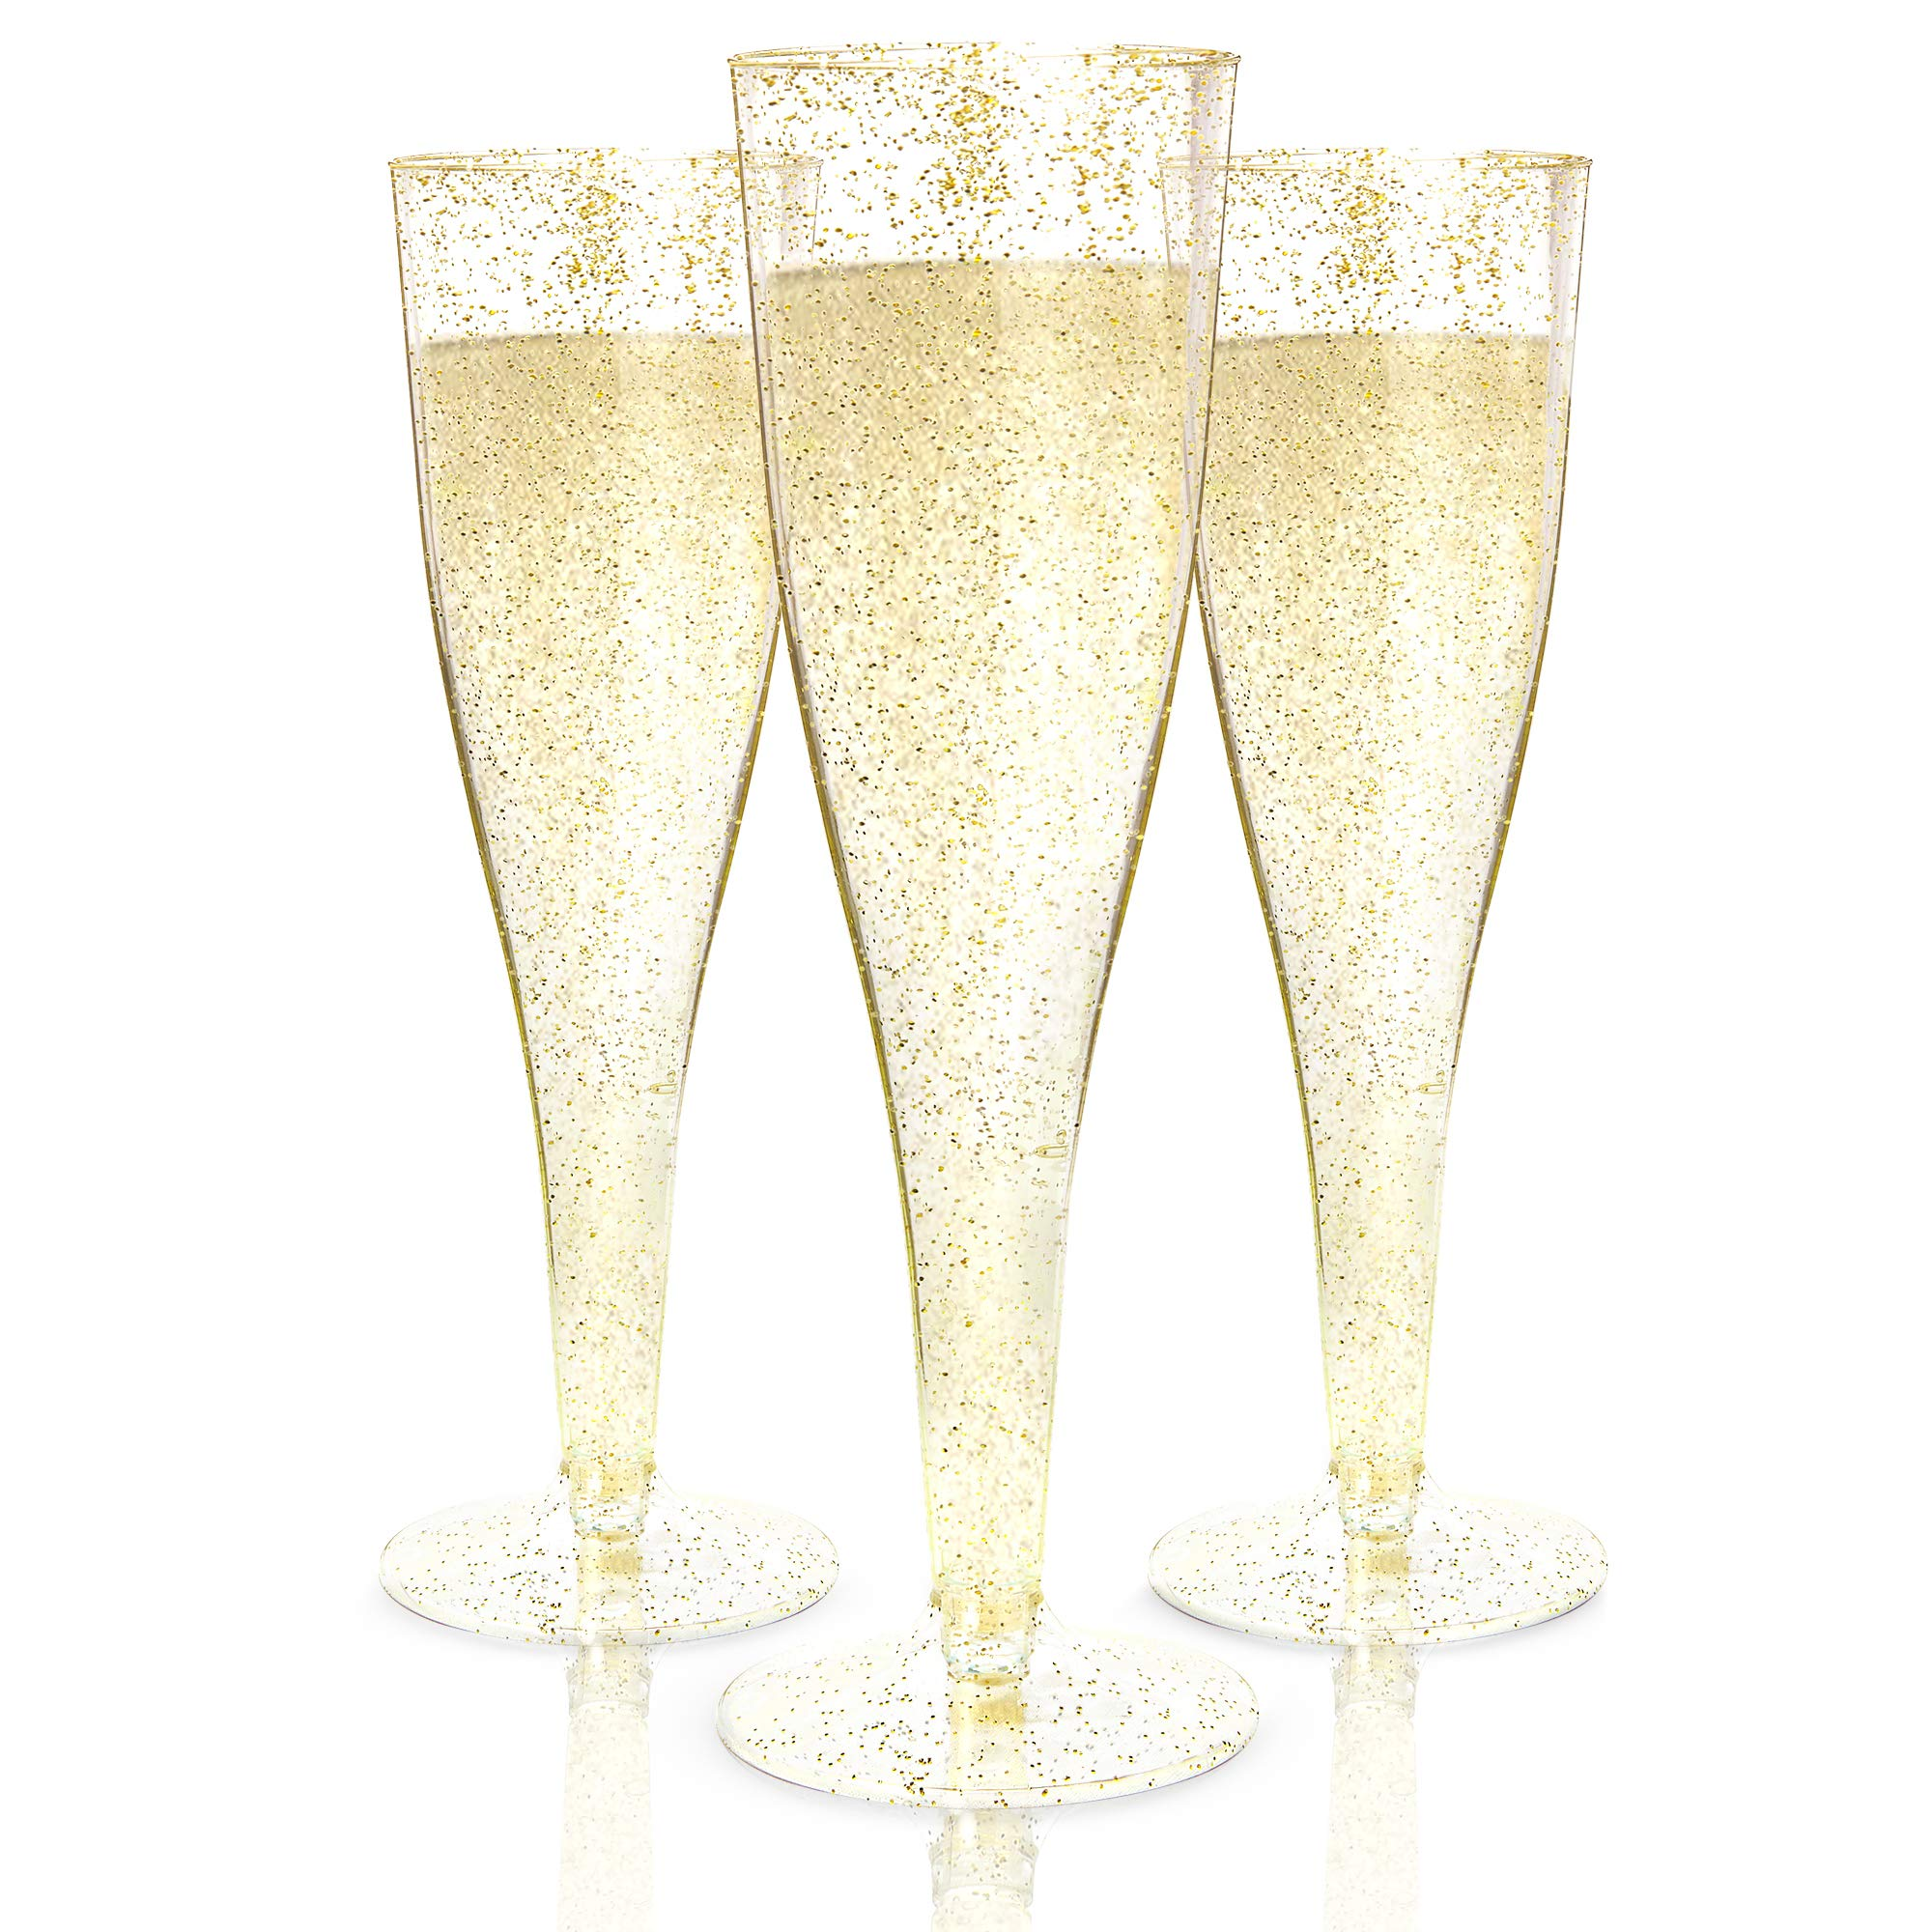 Plastic Champagne Flutes Disposable - 100 Pack | Gold Glitter Plastic Champagne Glasses for Parties | Glitter Clear Plastic Cups | Plastic Toasting Glasses | Mimosa Glasses | Wedding Party Bulk Pack by Prestee